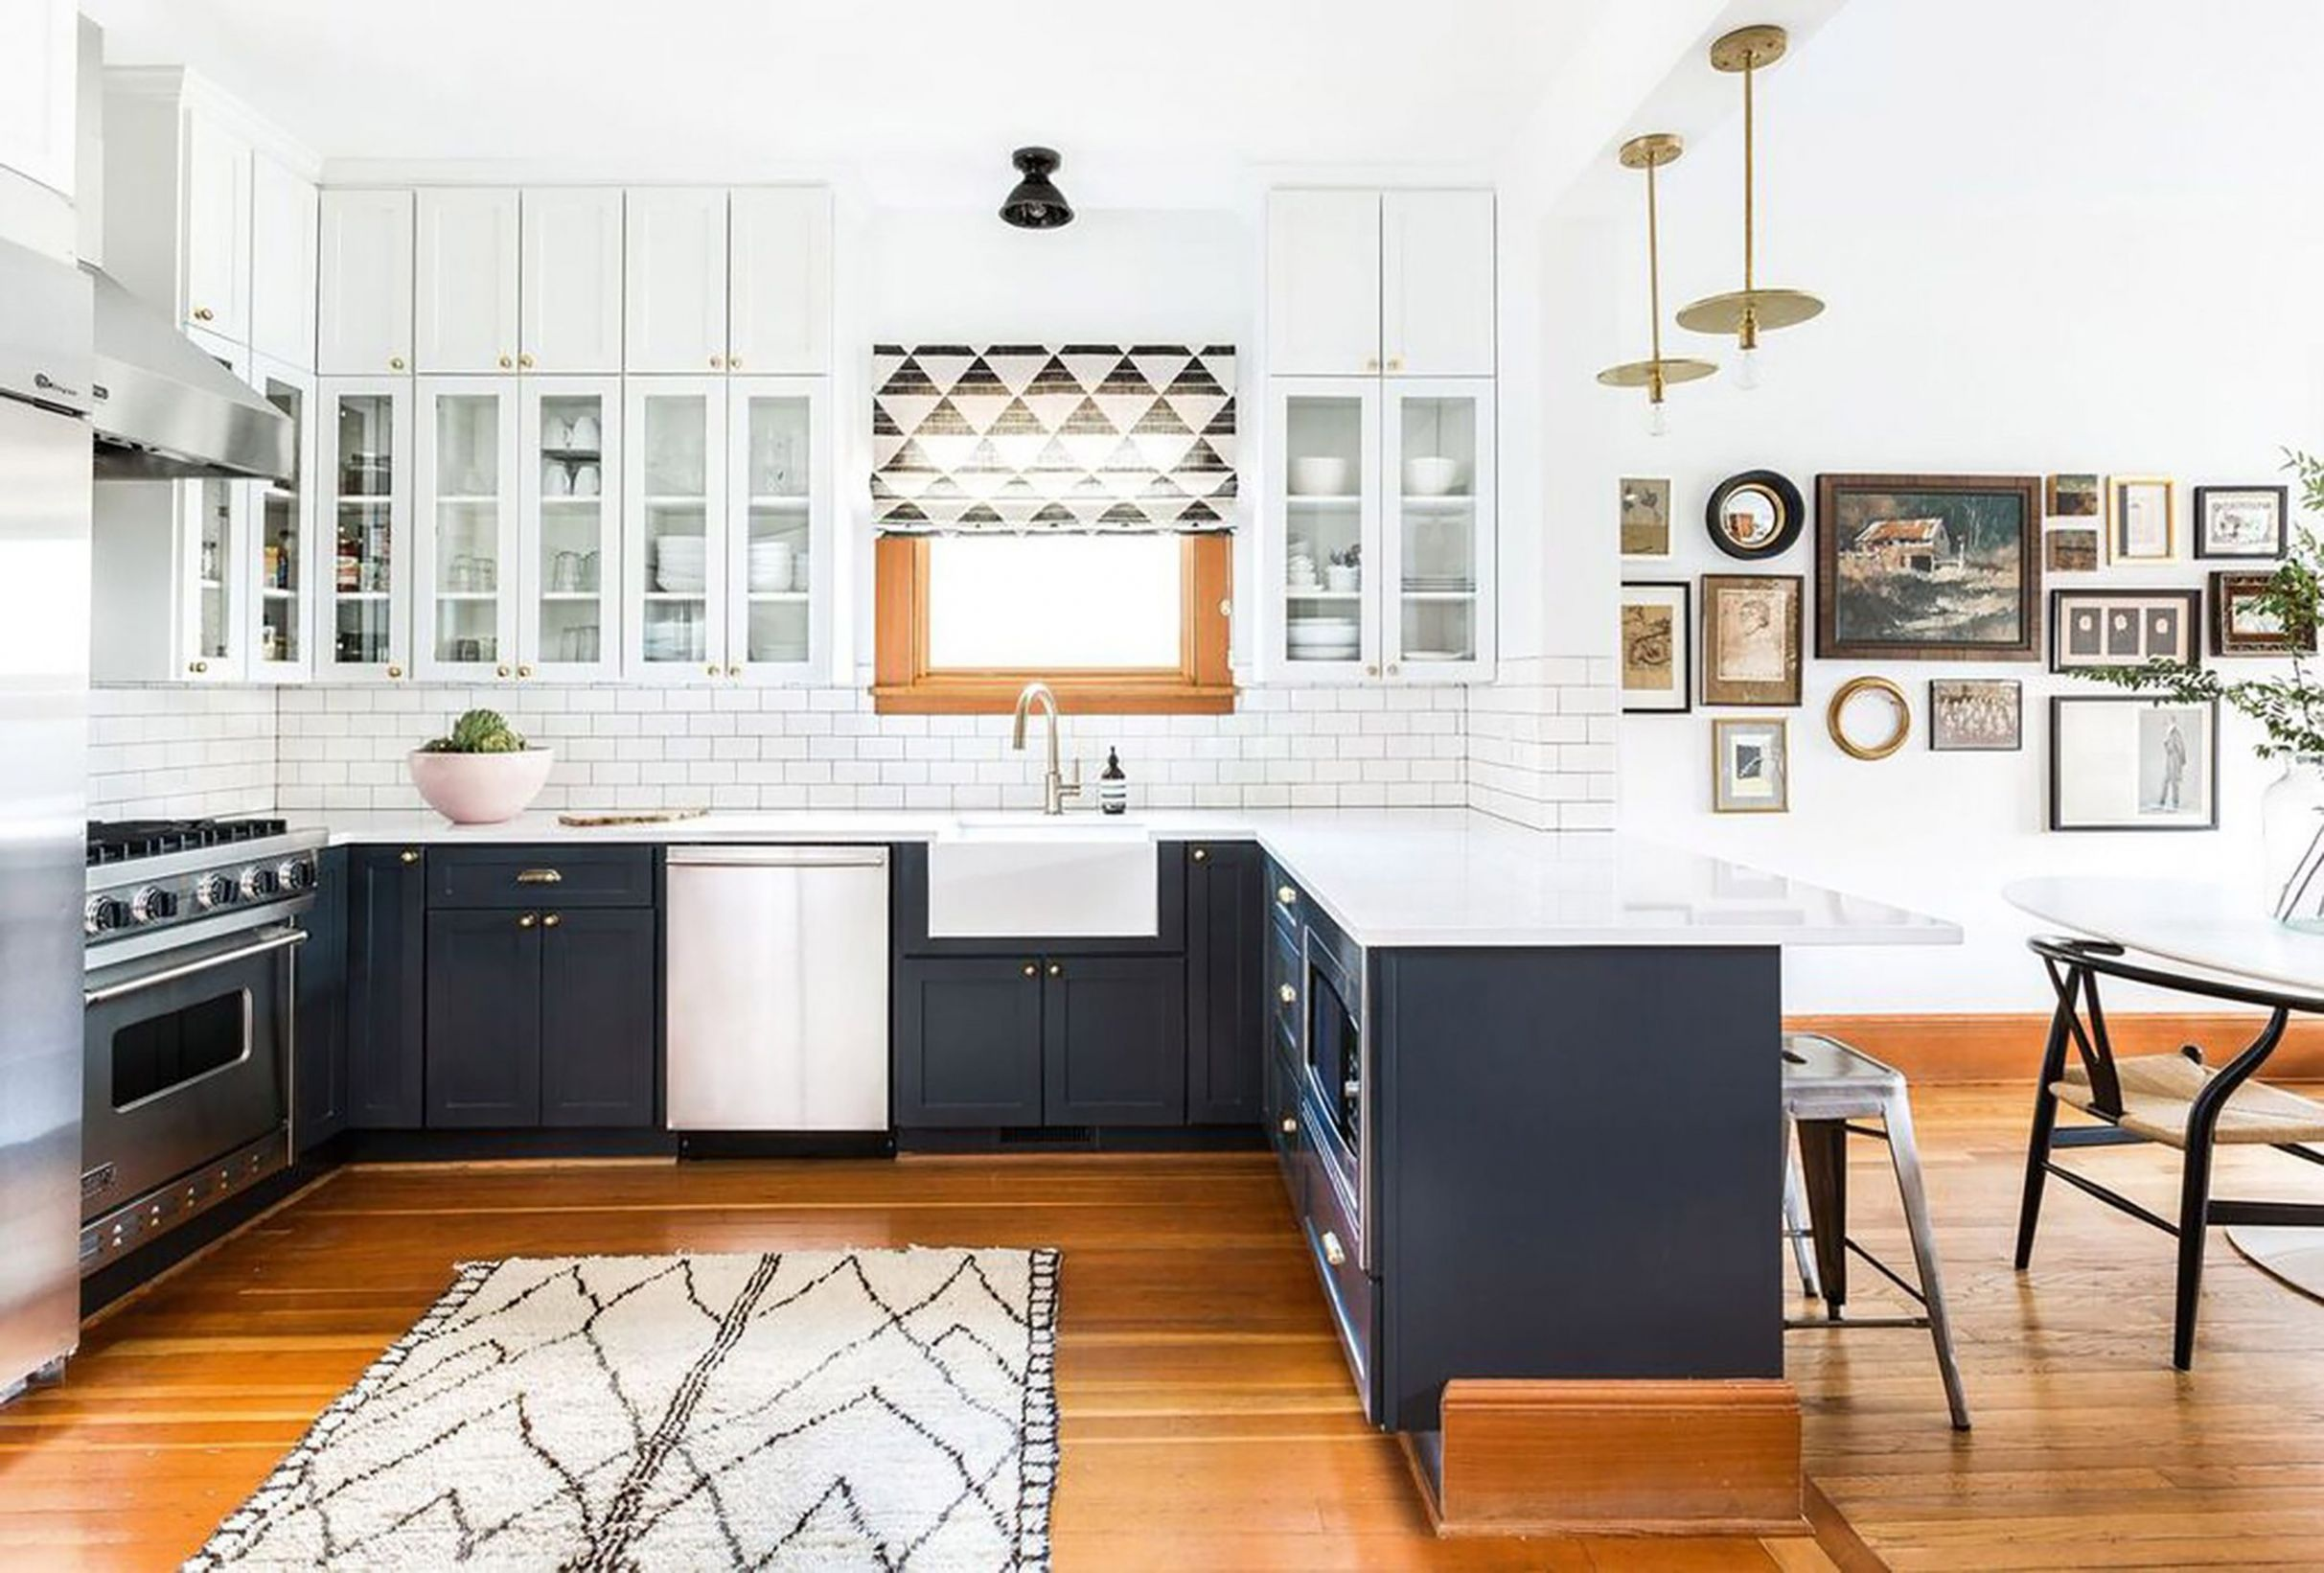 Kitchens With No Uppers: Insanely Gorgeous or Just Insane? - Emily ...